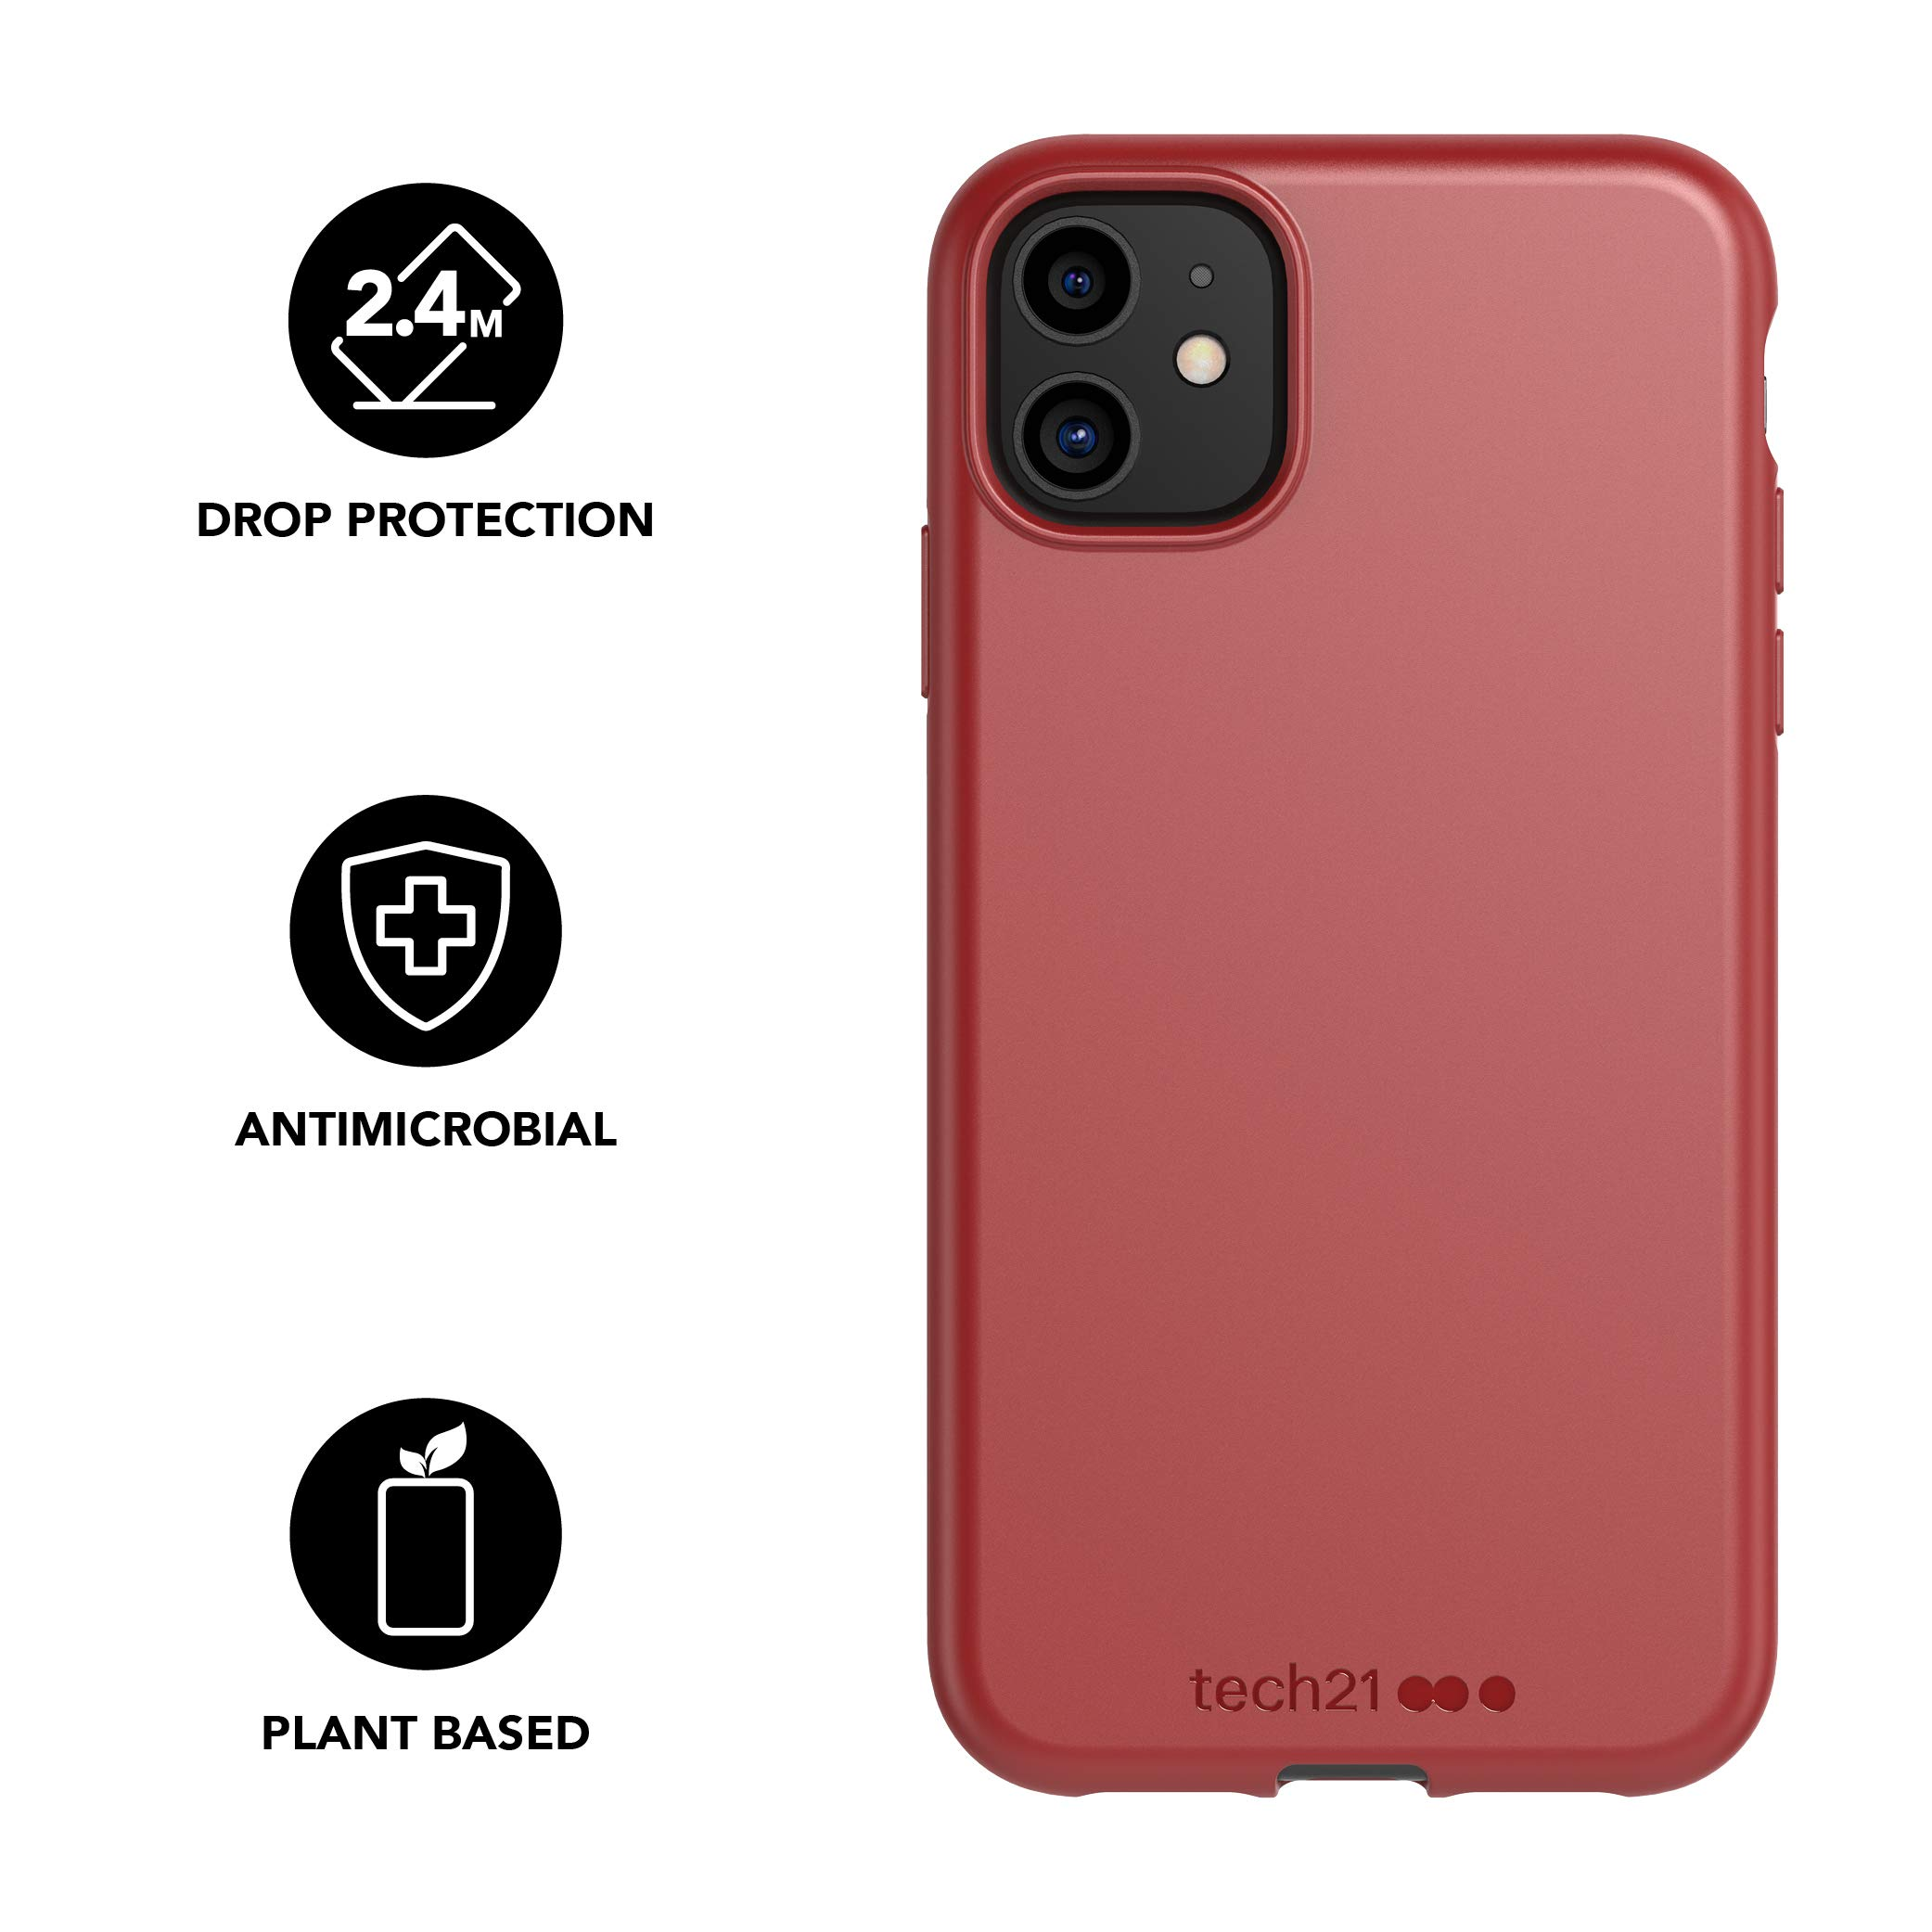 tech21 Studio Colour Mobile Phone Case - Compatible with iPhone 11 - Slim Profile with Anti-Microbial Properties and Drop Protection, Terra Red